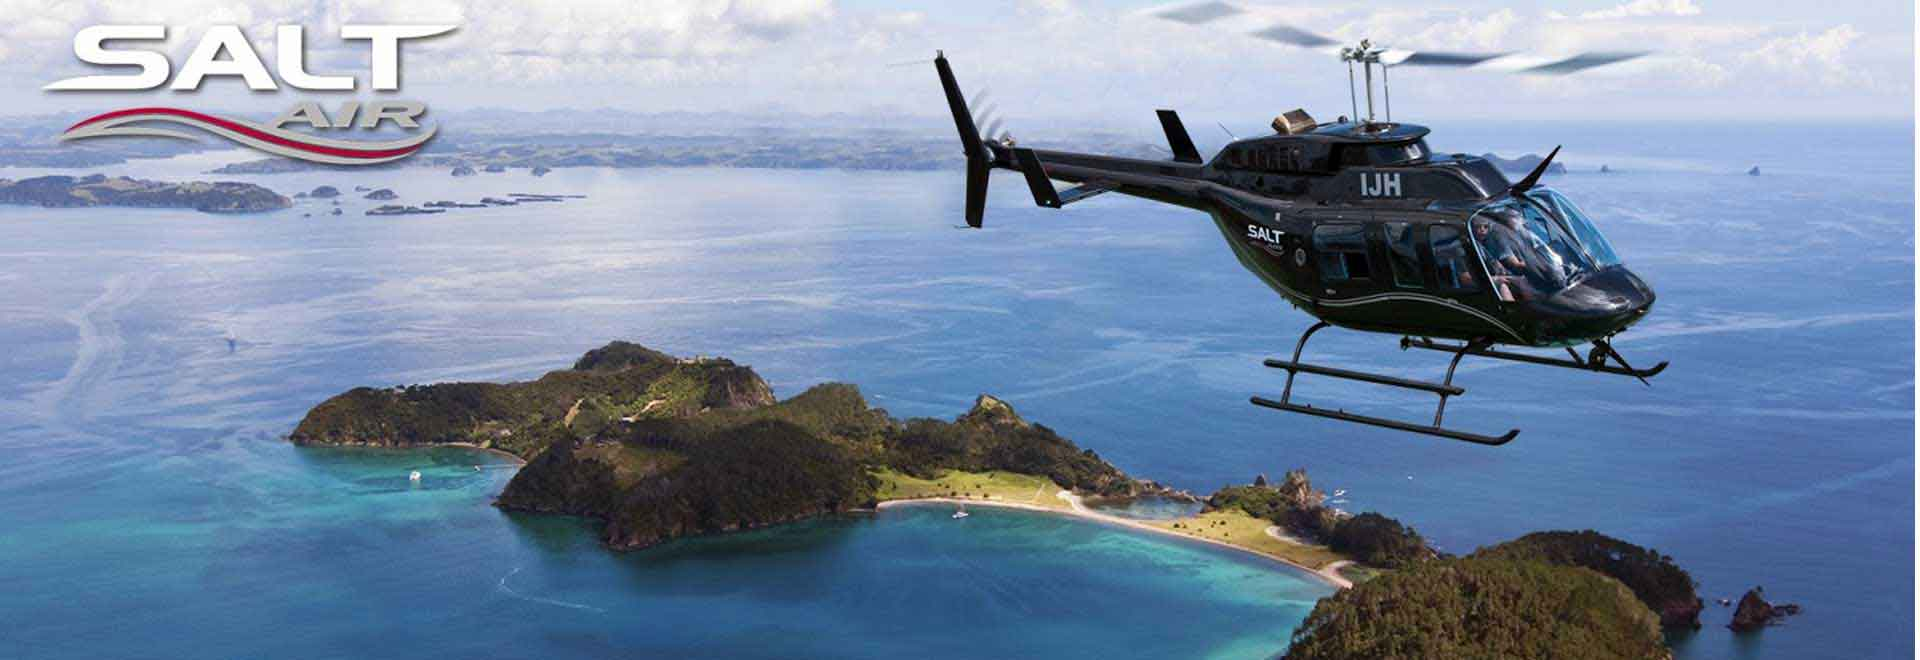 Salt Air Helicopter Tours Paihia